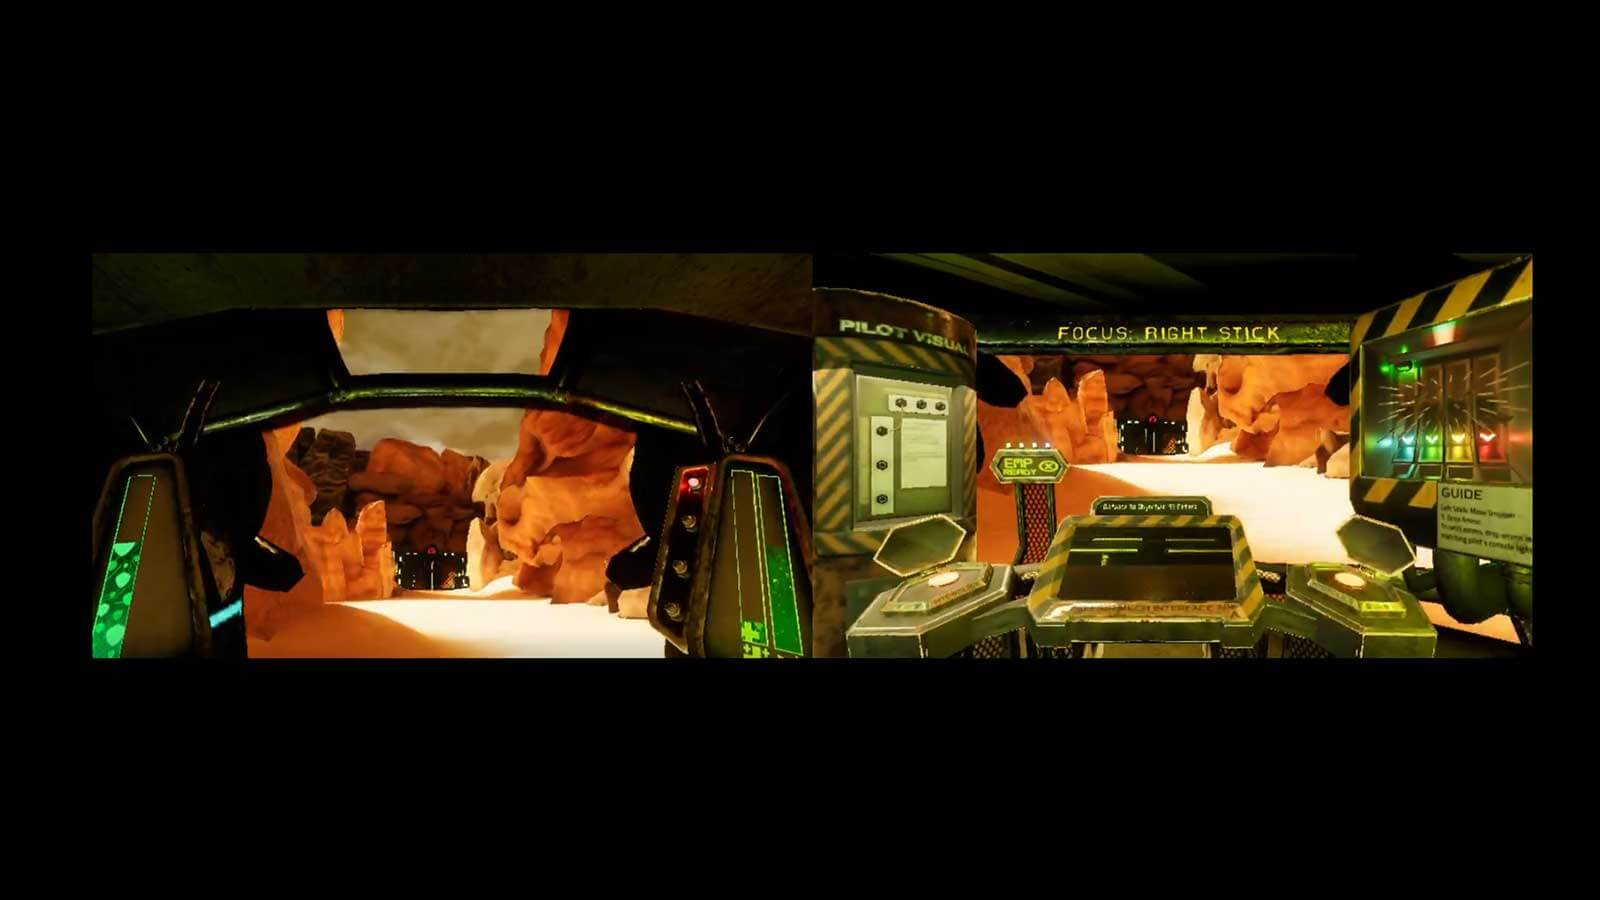 Side-by-side view of mech suit piloting cockpit and engineering controls